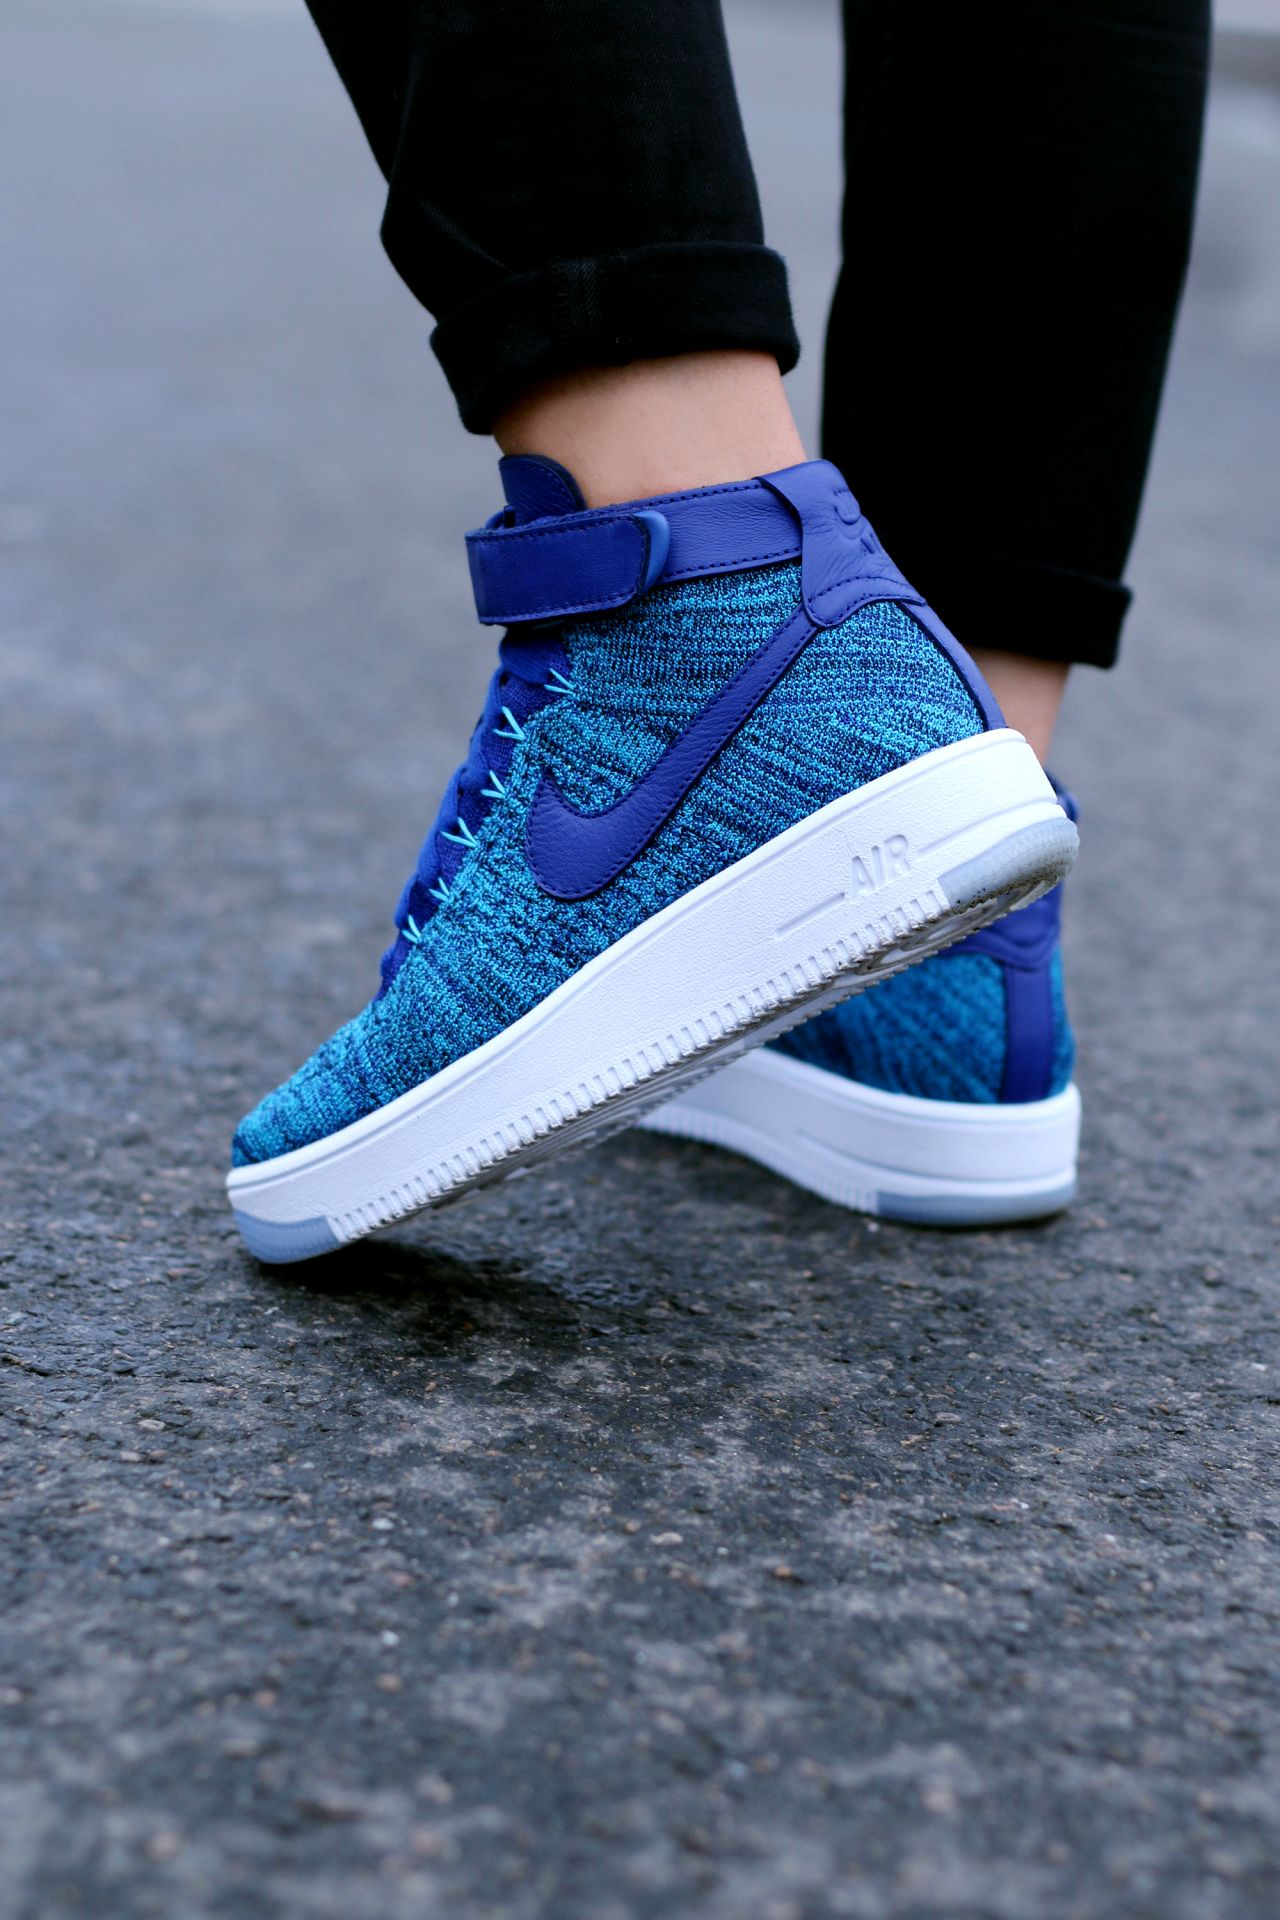 321367e1c91a Nike Air Force 1 Flyknit: Blue | Wow | Pinterest